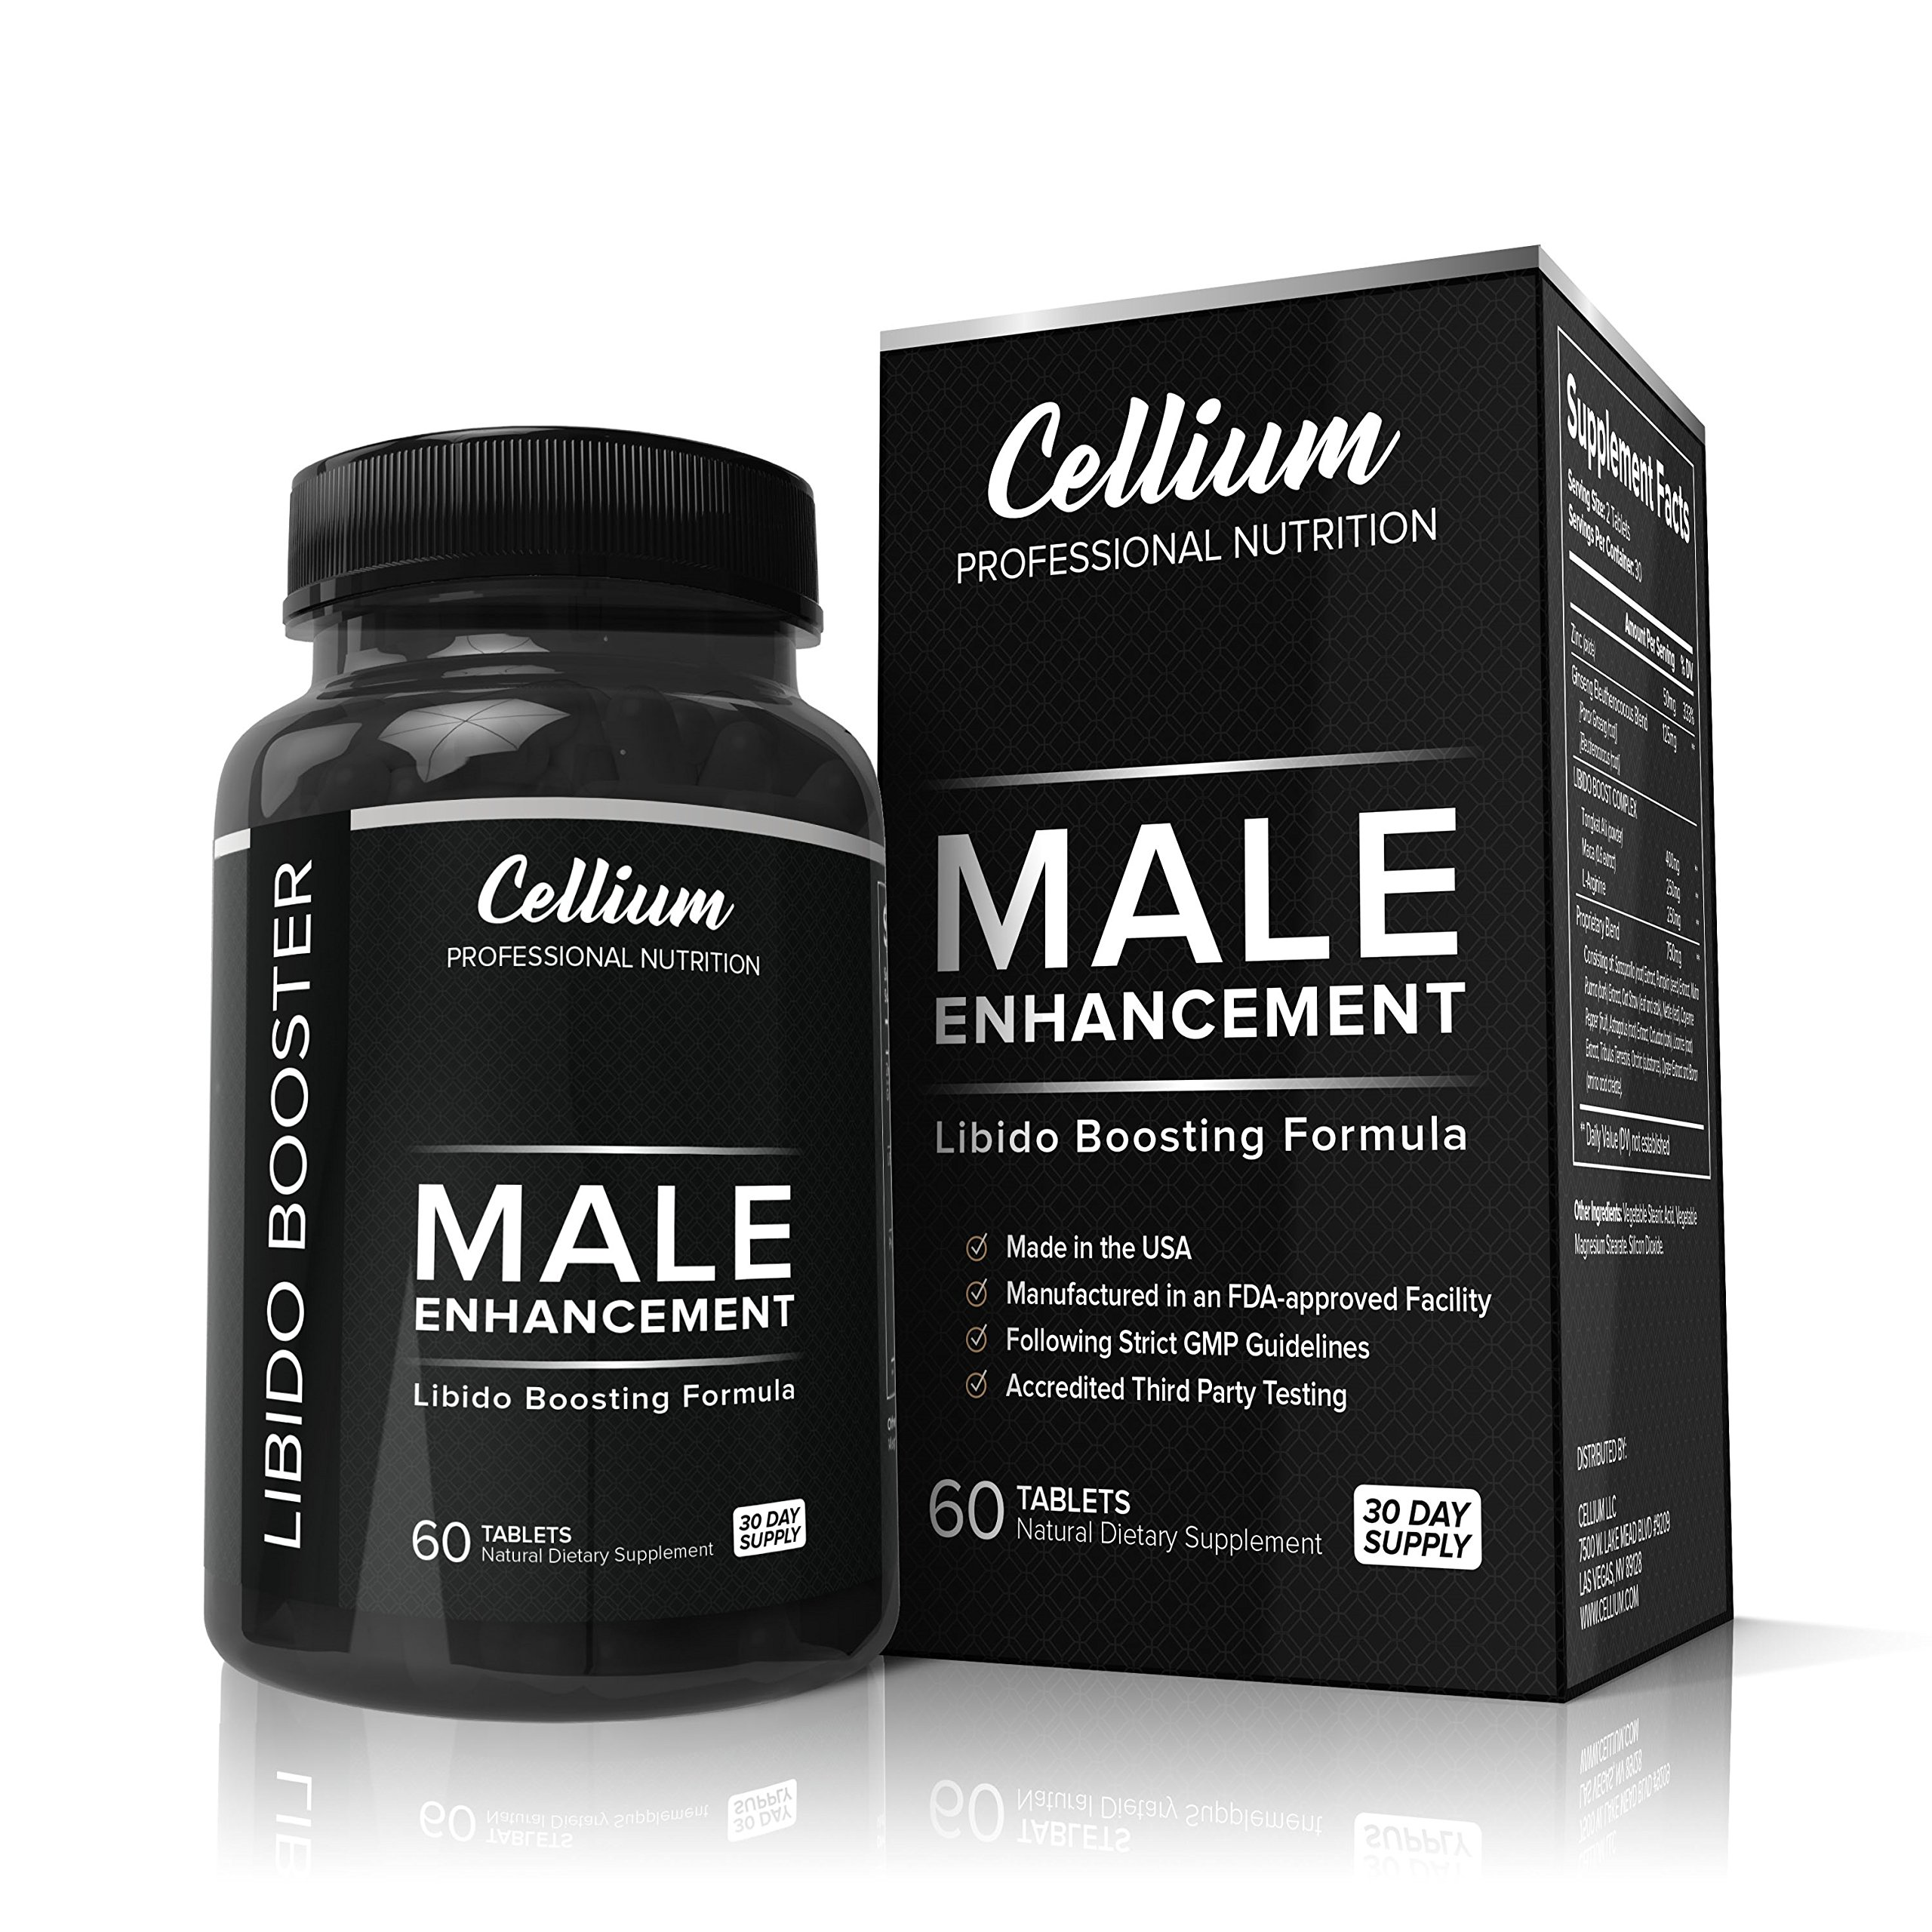 FLASH SALE - Male Enhancement Pills - ENHANCE Libido, PROMOTE Blood Flow & BOOST Energy - All Natural Supplement, INCREASES Stamina, Performance & Testosterone